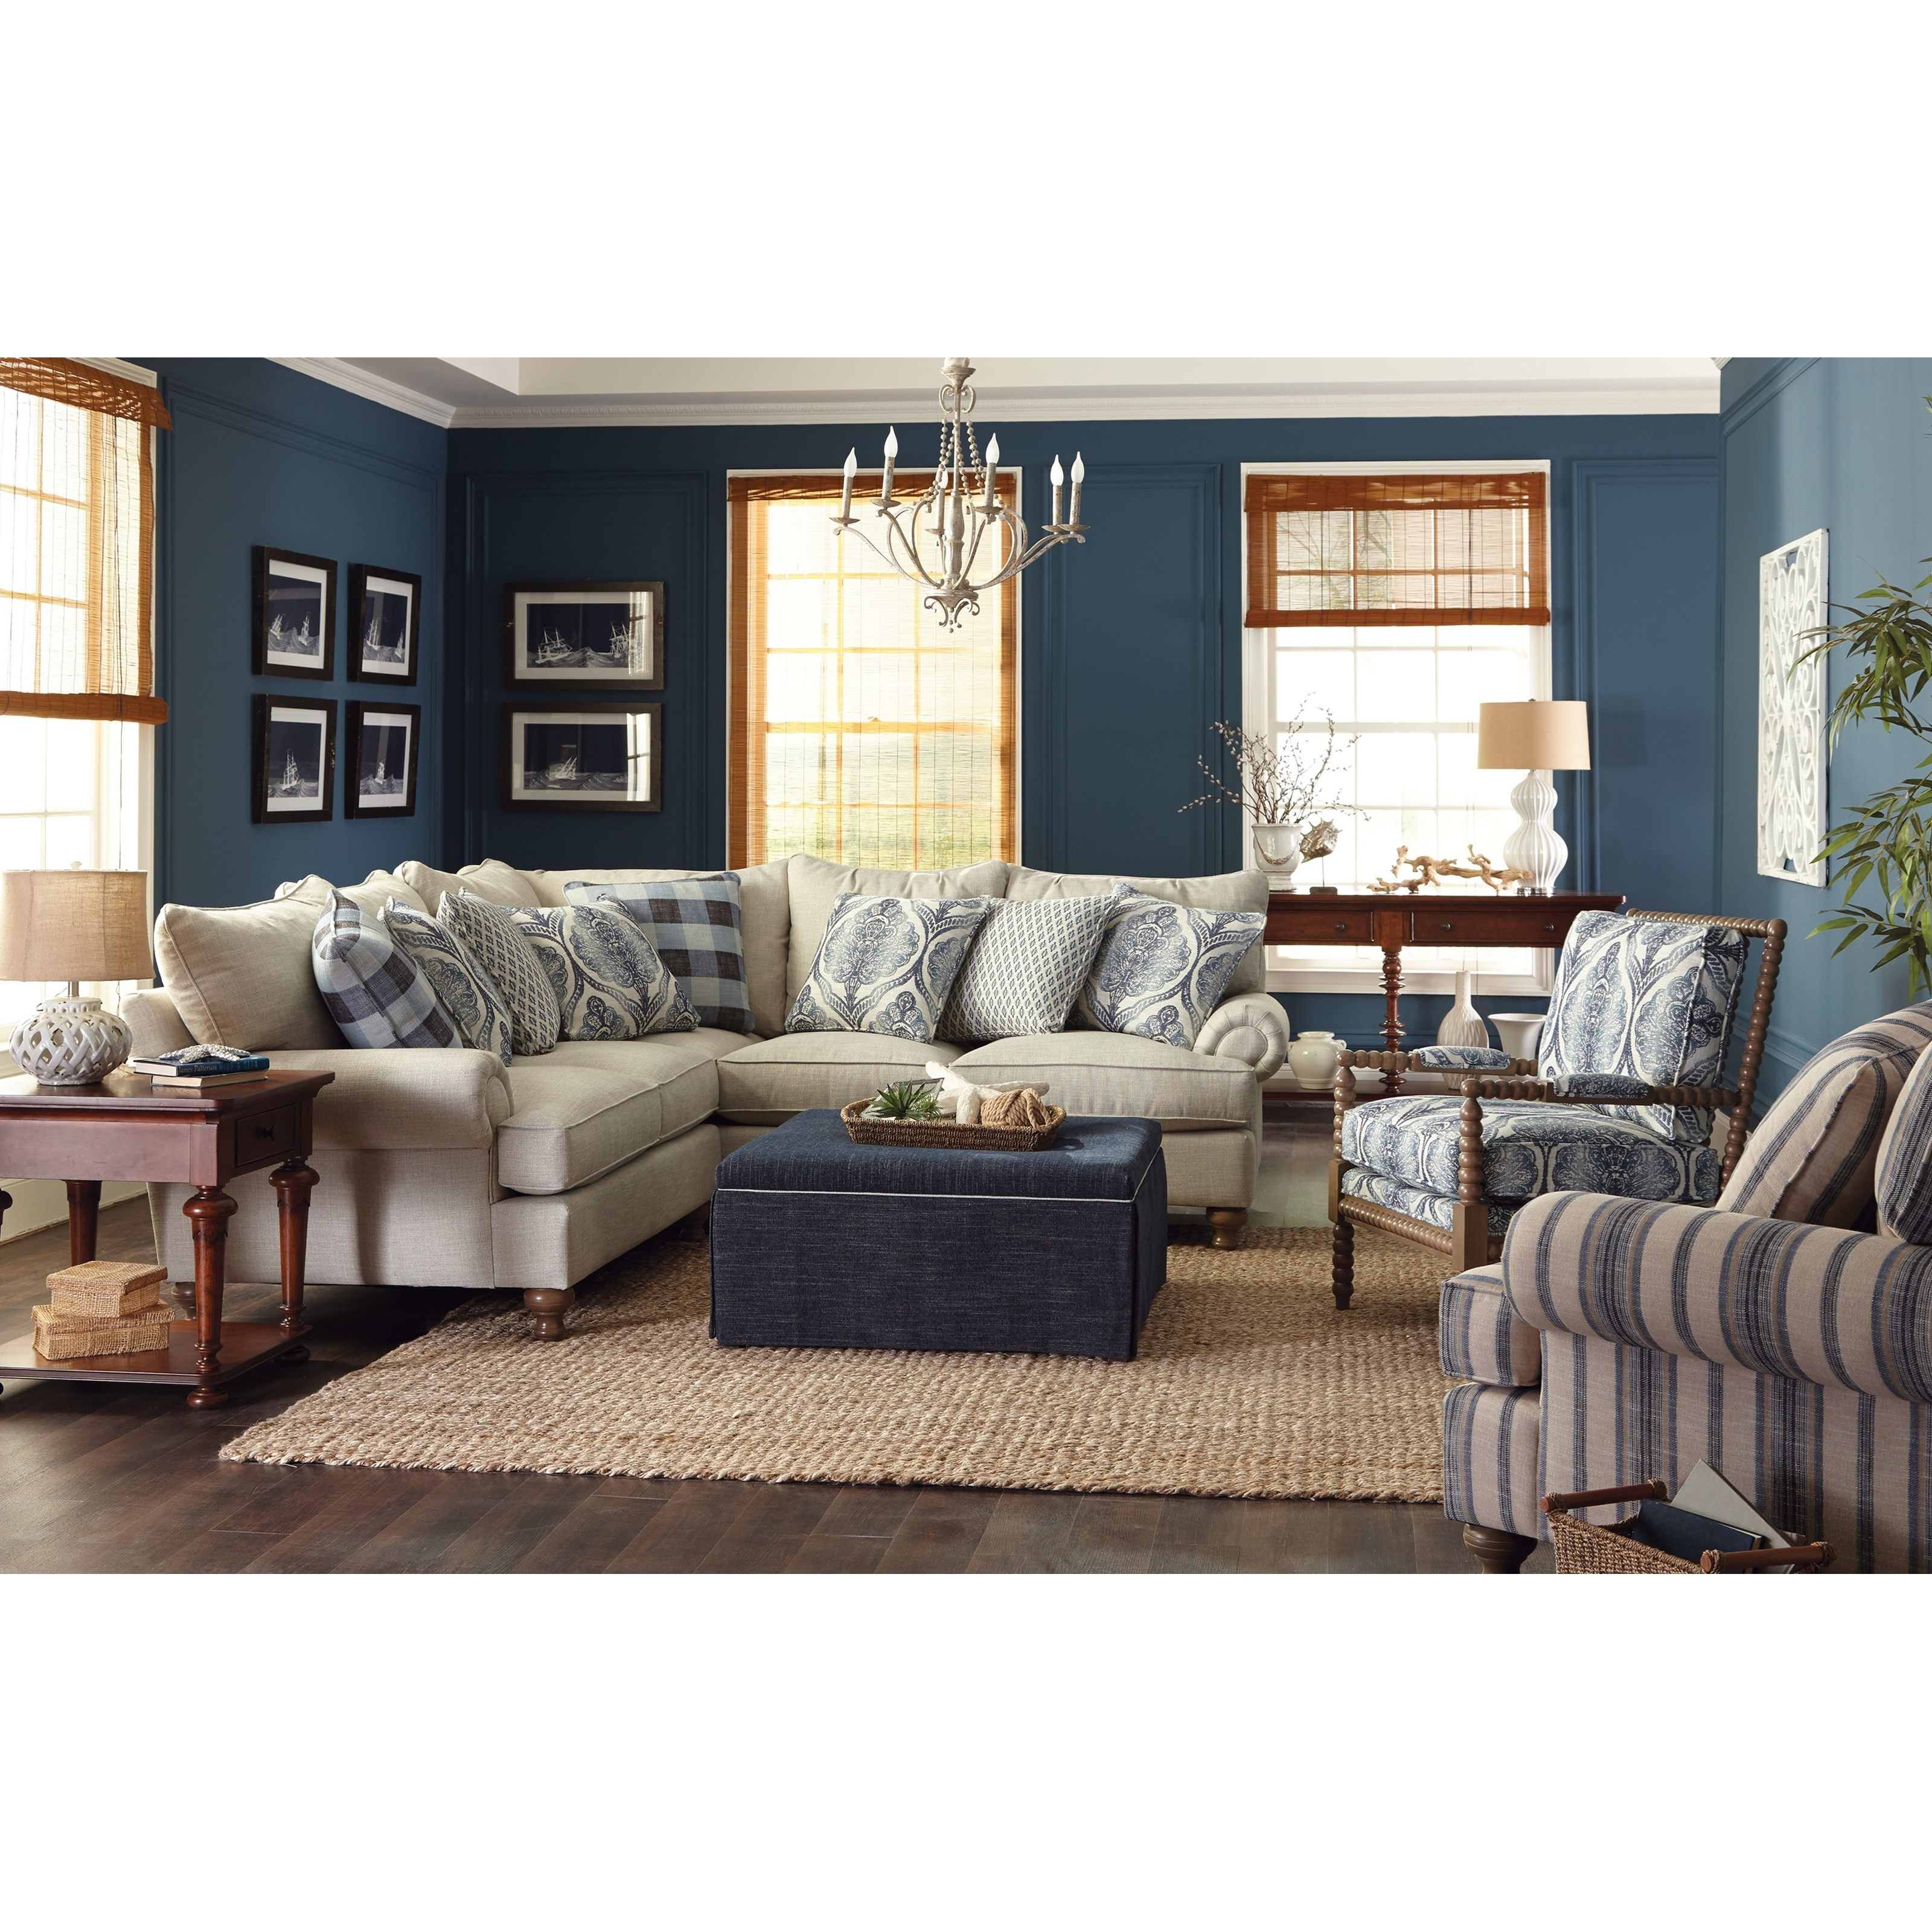 2 pc laf sectional sofa turner sofas molteni c paula deen by craftmaster p711700 2-piece ...